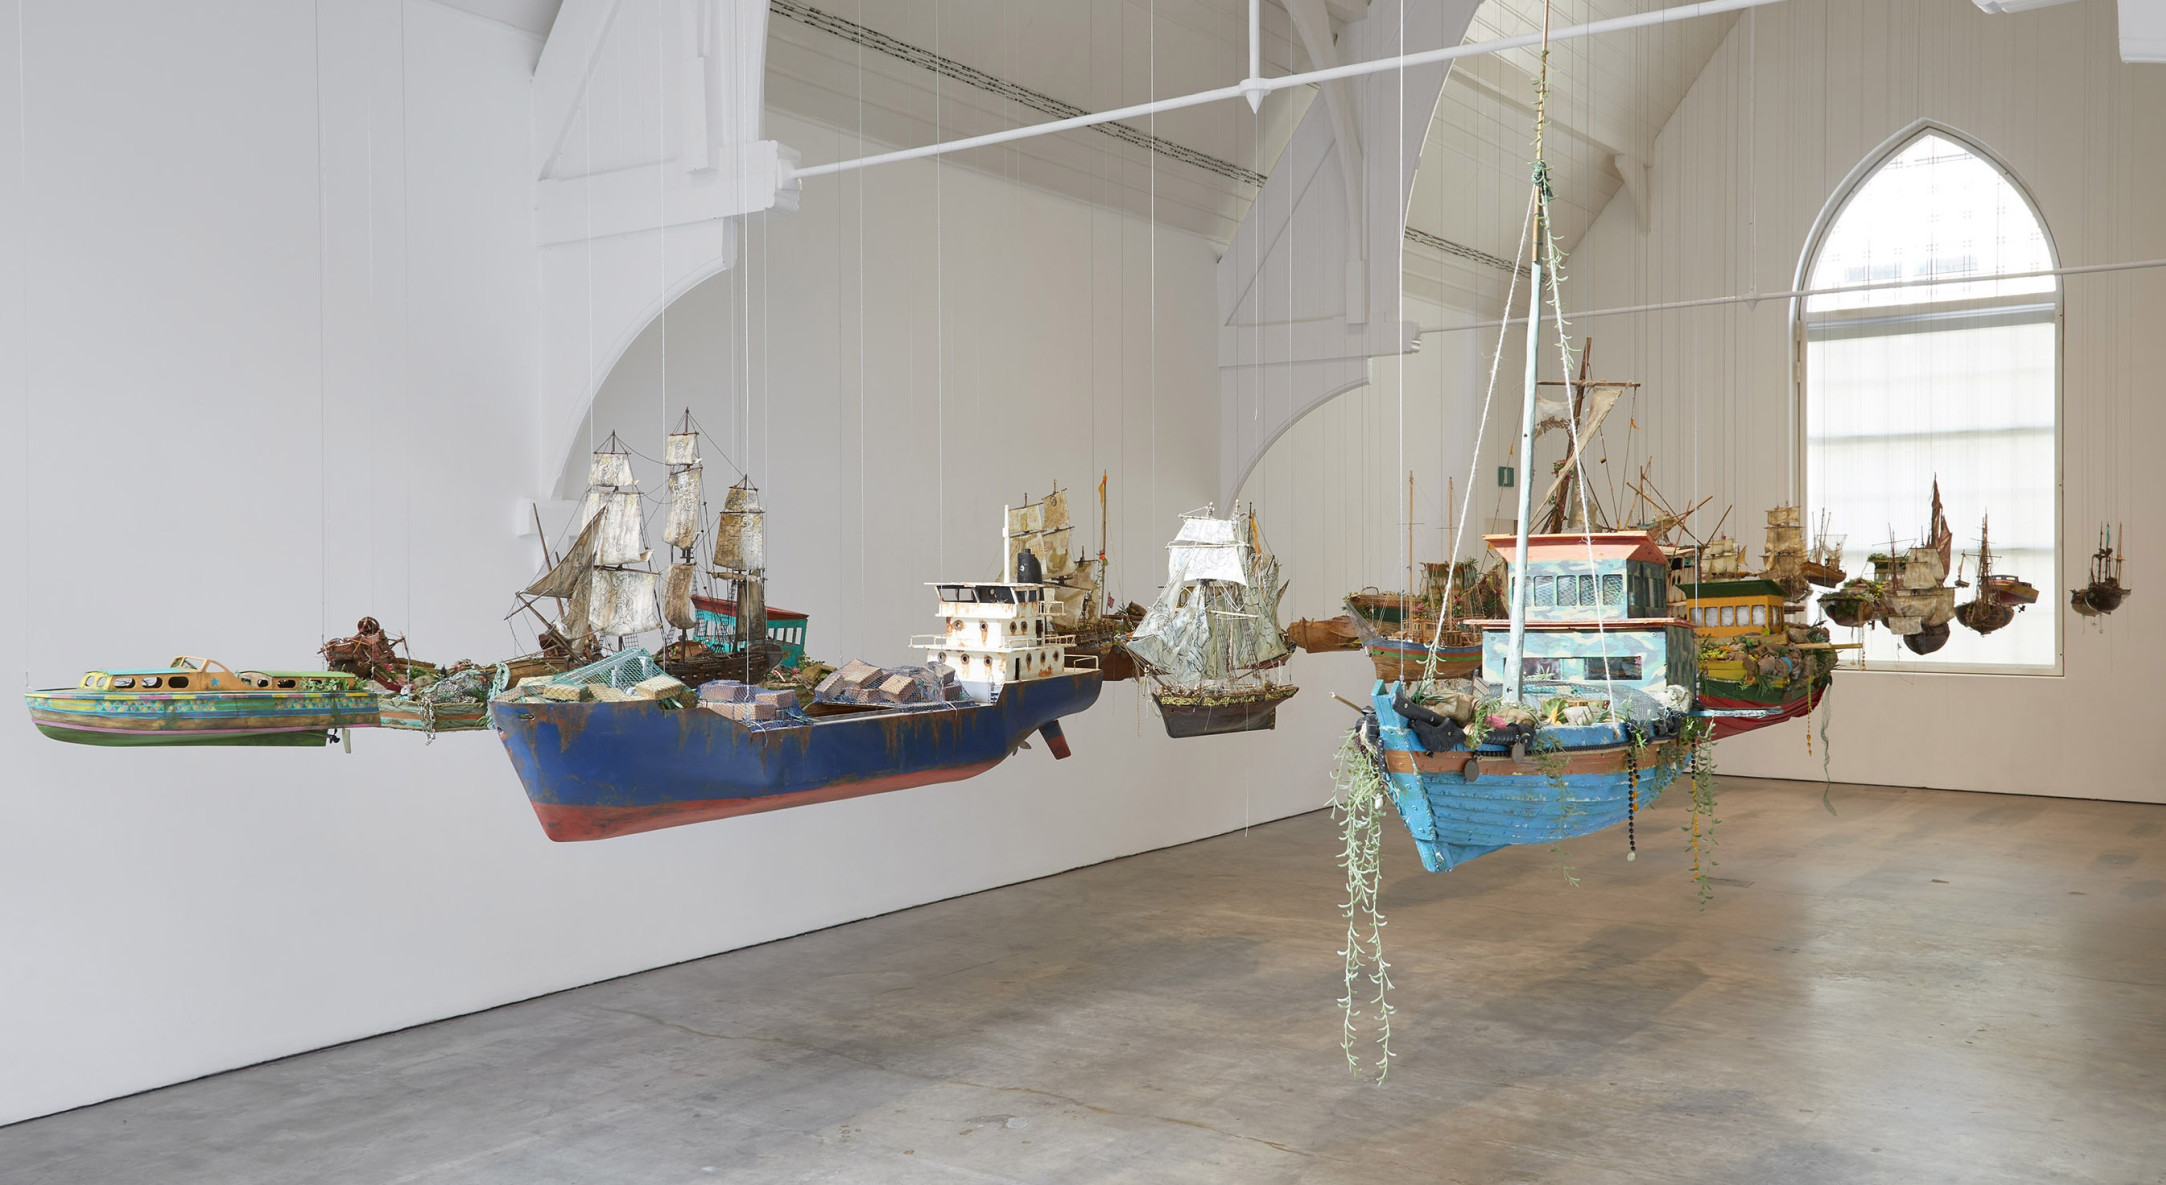 Installation view of Hew Locke, Here 's the Thing at Ikon Gallery, Birmingham